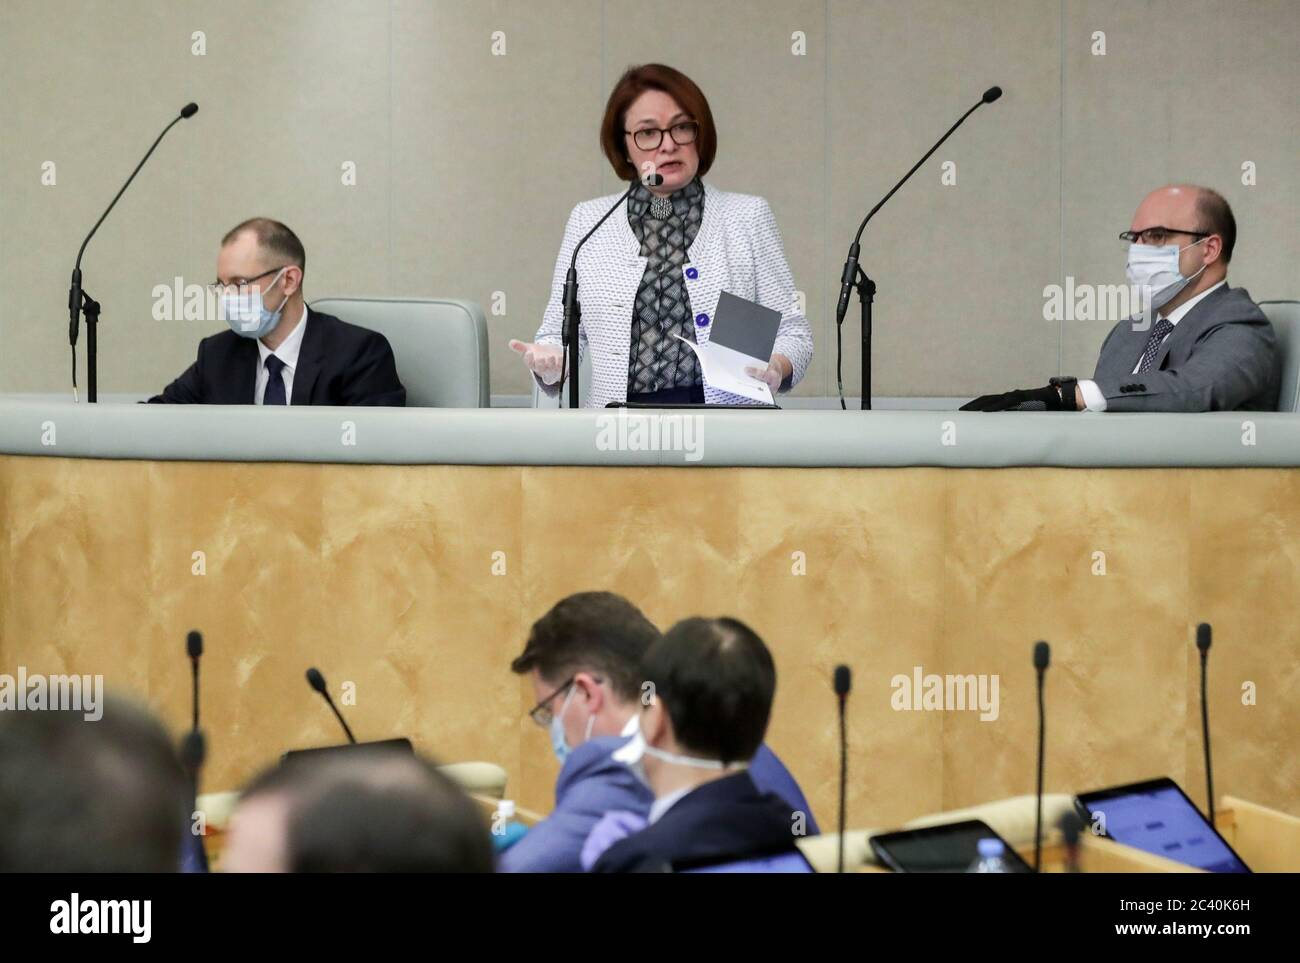 Moscow, Russia. 23rd June, 2020. Central Bank Governor Elvira Nabiullina (C back) attends a plenary meeting of the Russian State Duma. Credit: Russian State Duma Photo Service/TASS/Alamy Live News Stock Photo